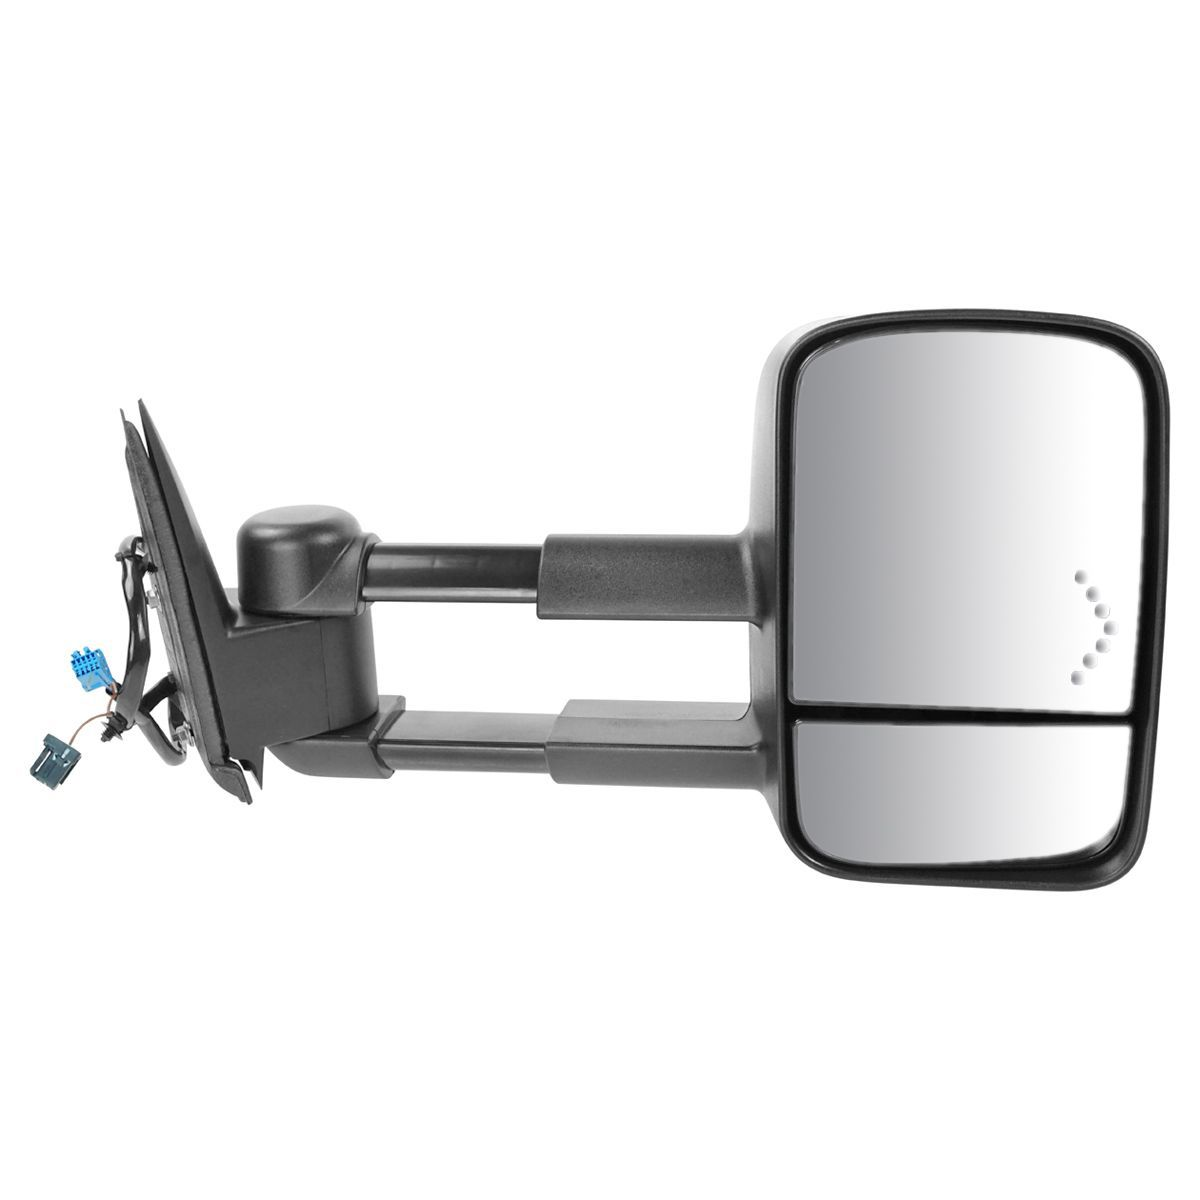 Power Mirror For 2003-06 Chevy Silverado 1500 Left Side Manual Fold With Signal